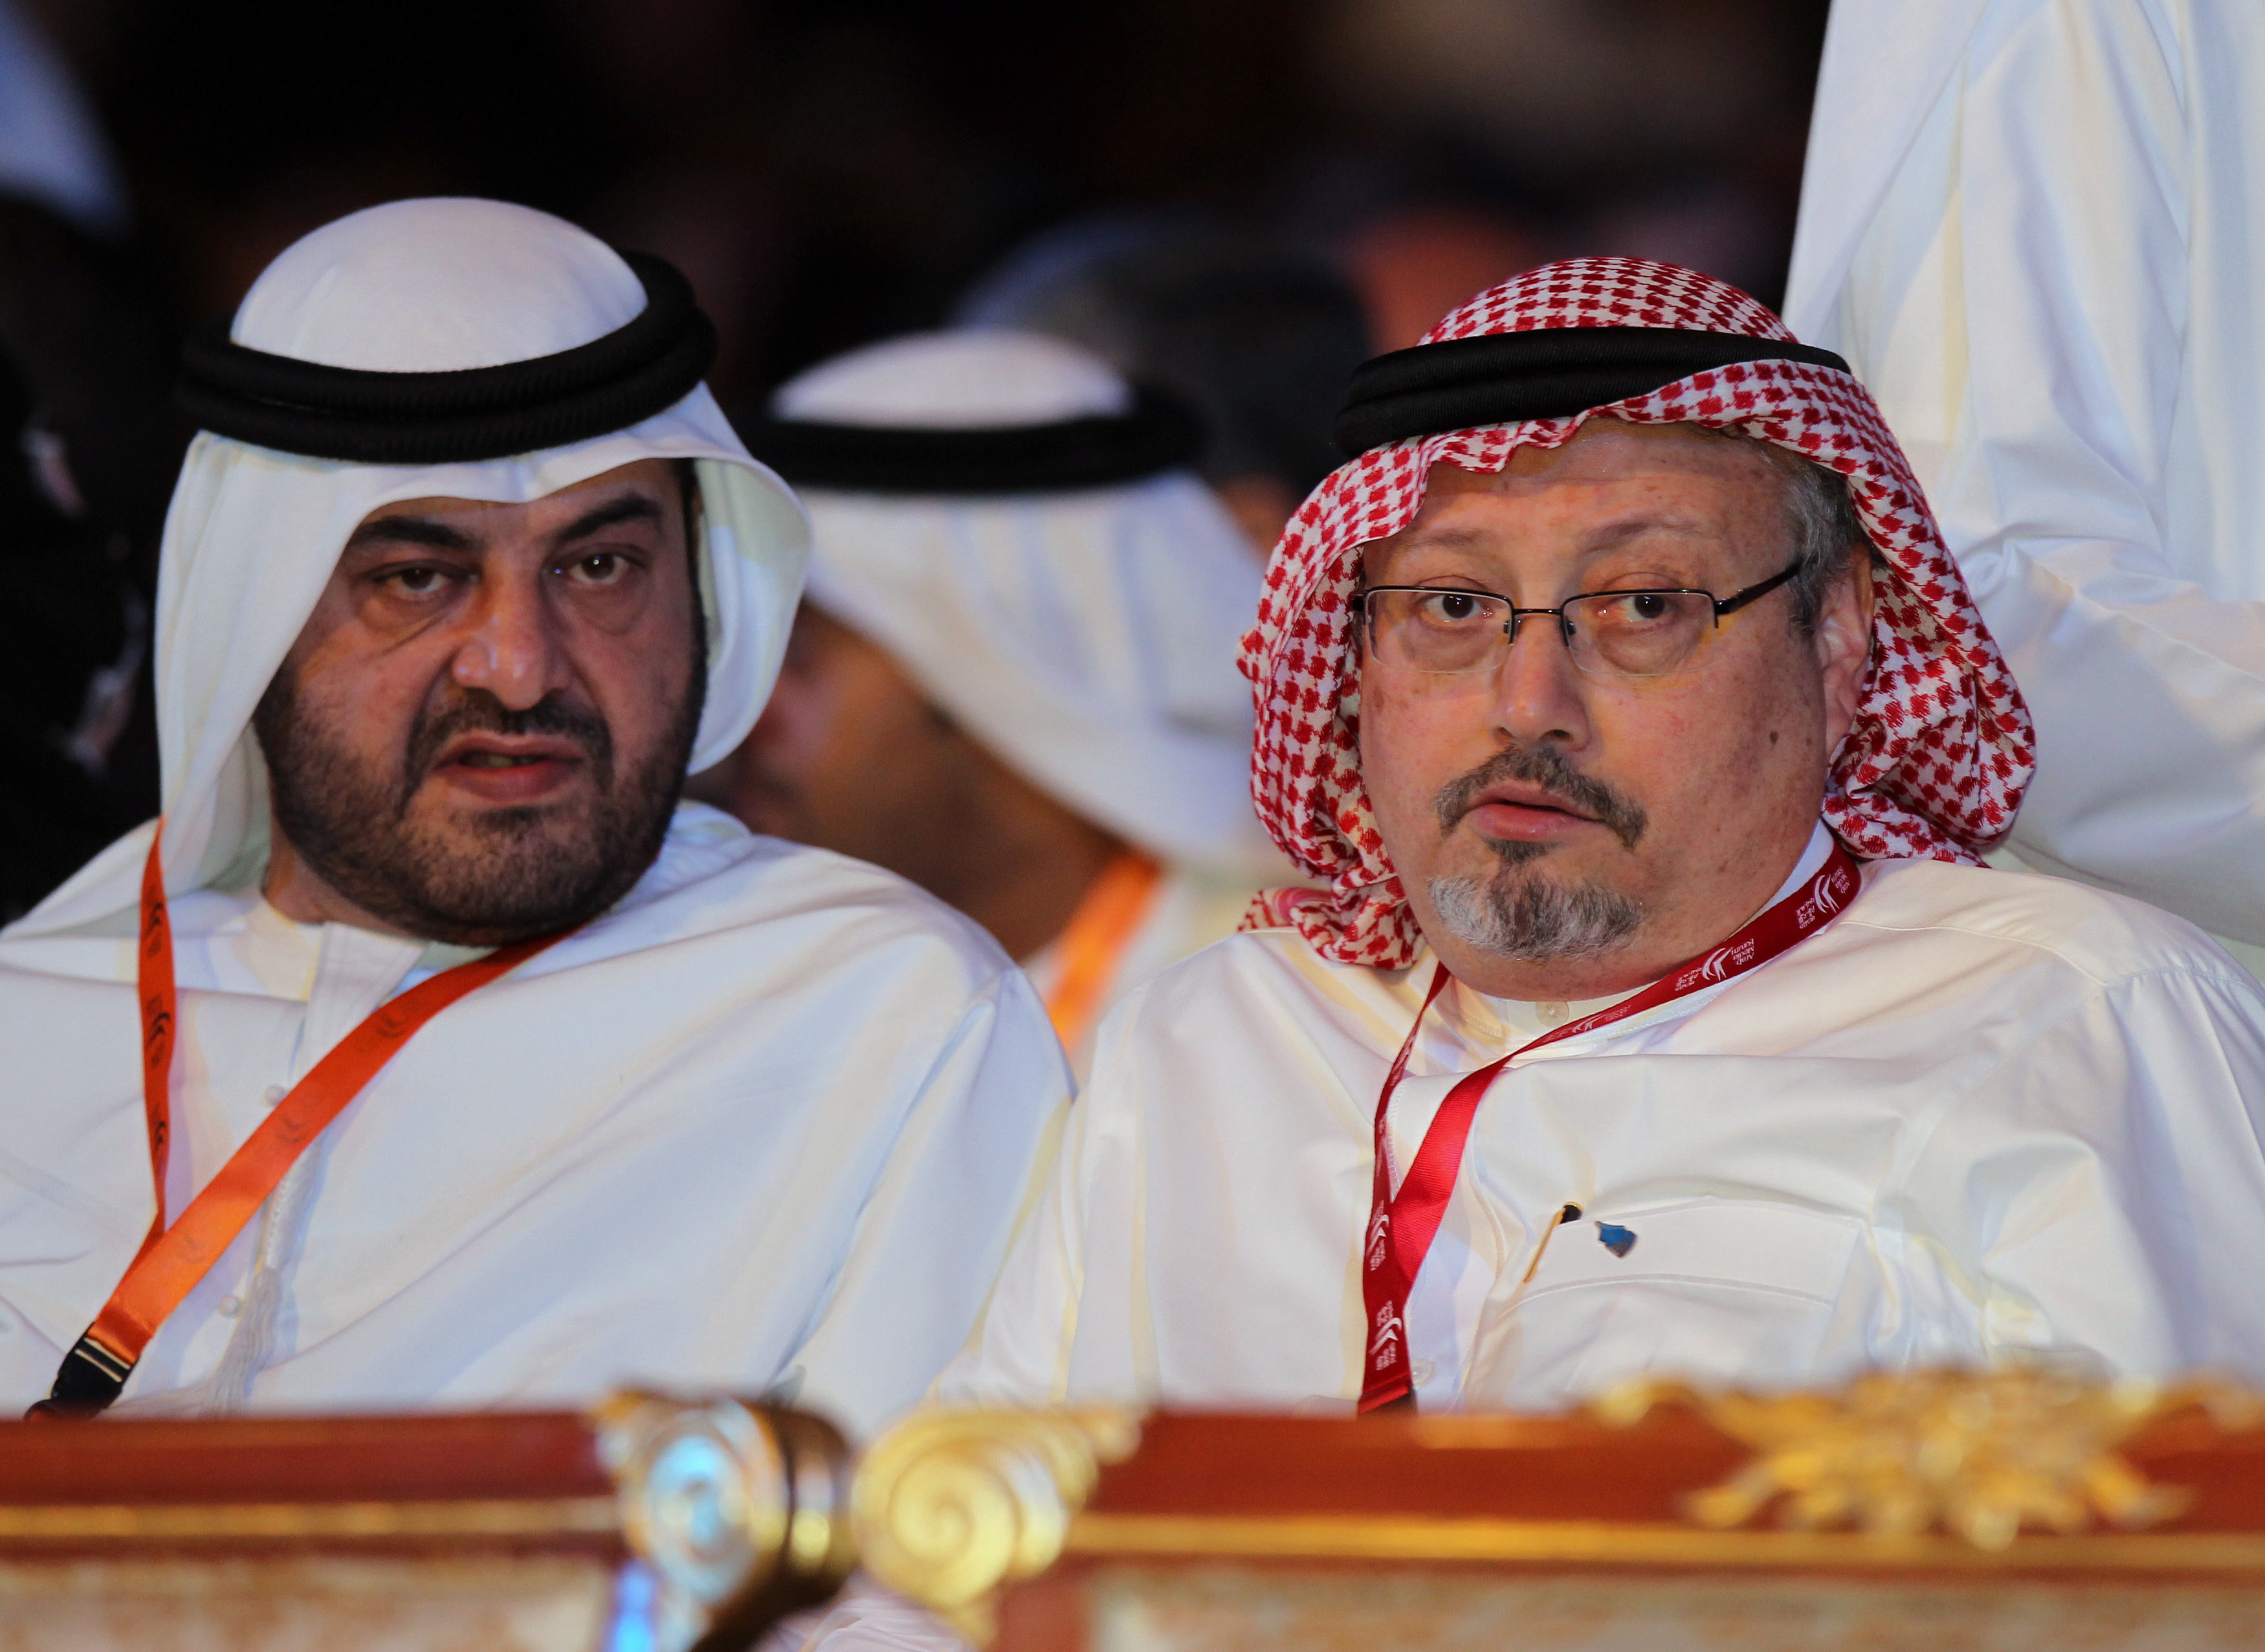 Saudi Journalist and Former Editor-in-chief of the Saudi Newspaper Al-watan Jamal Khashoggi (R) attends the the Opening Ceremony of 11th Edition of Arab Media Forum 2012 in Dubai, United Arab Emirates. Khashoggi went missing after he entered the Saudi Arabian consulate in Istanbul, Turkey, to obtain a marriage license.